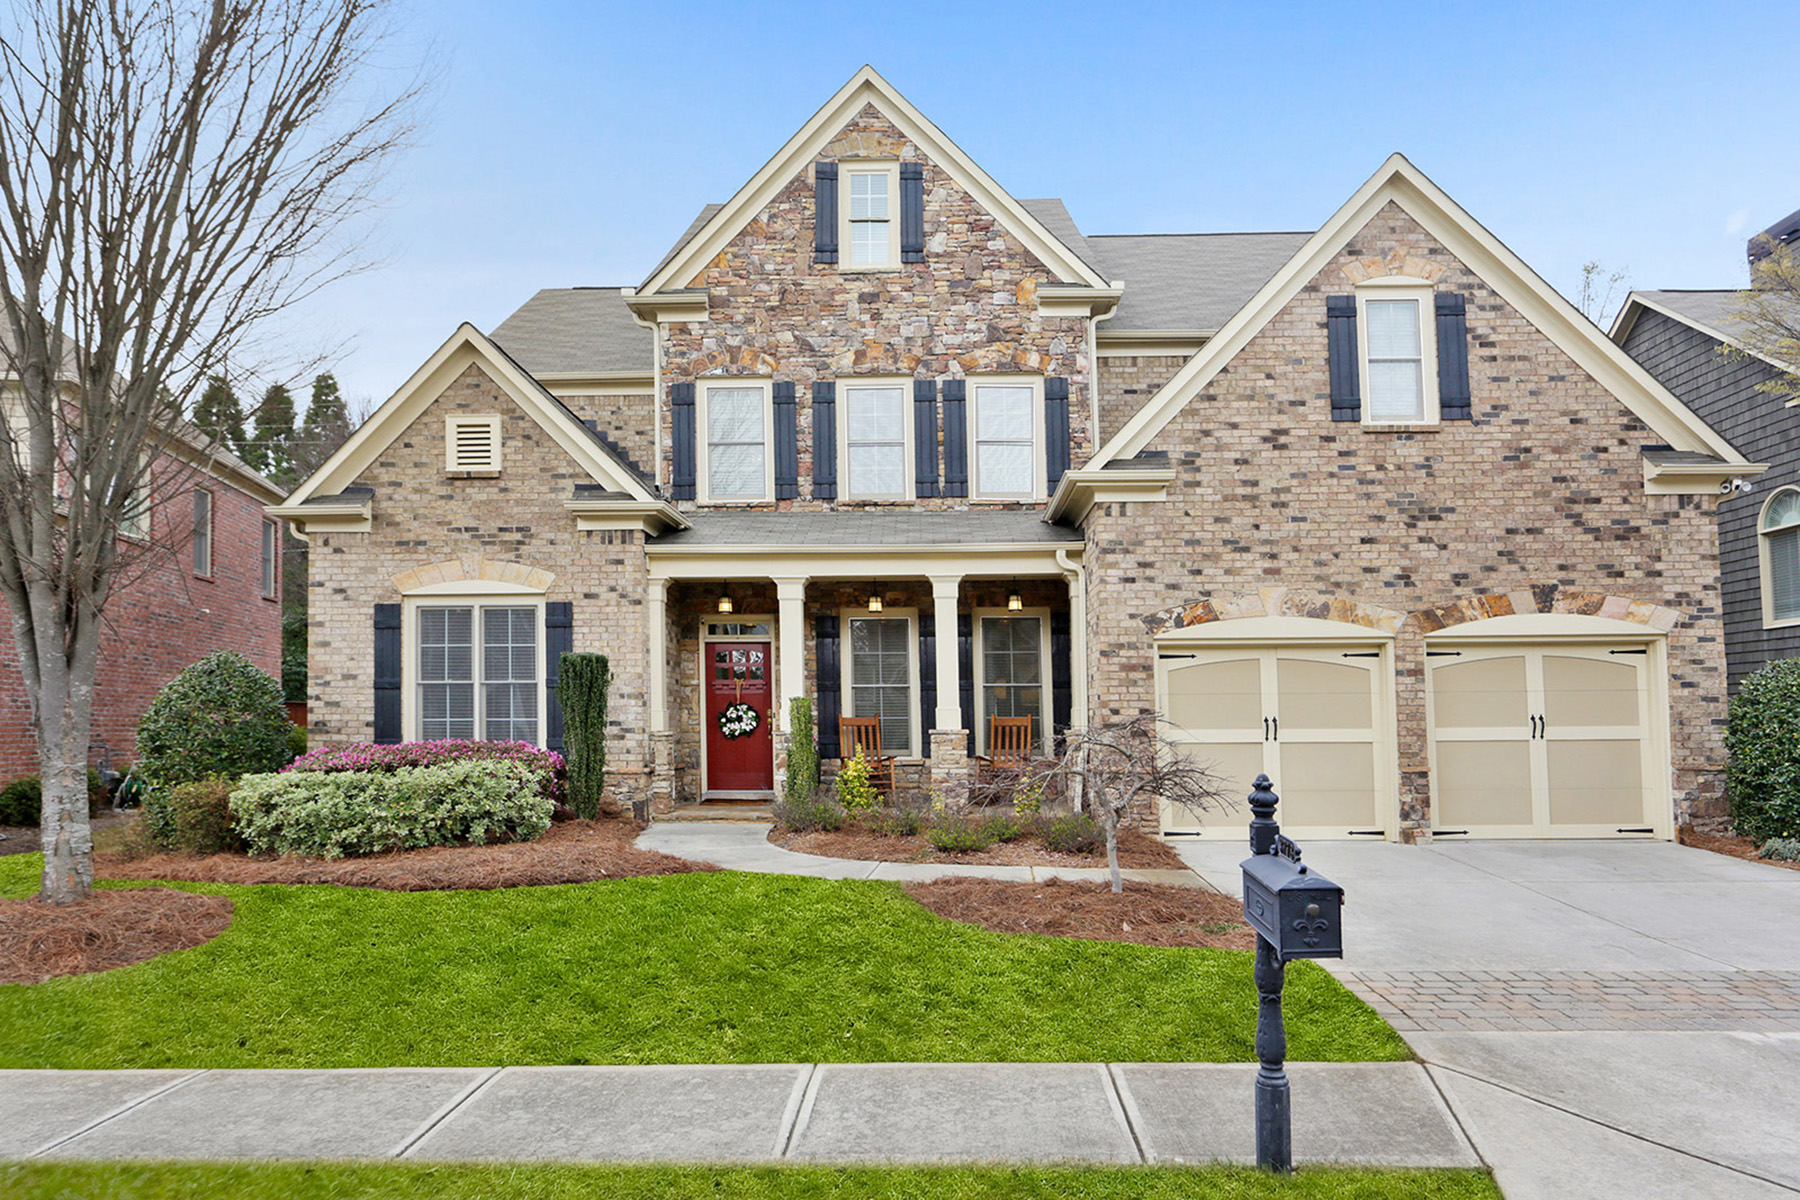 Single Family Homes for Active at Meticulously Maintained Home In Perfect Location In Sought After Swim Community 3778 Wakefield Hall Square SE Smyrna, Georgia 30080 United States